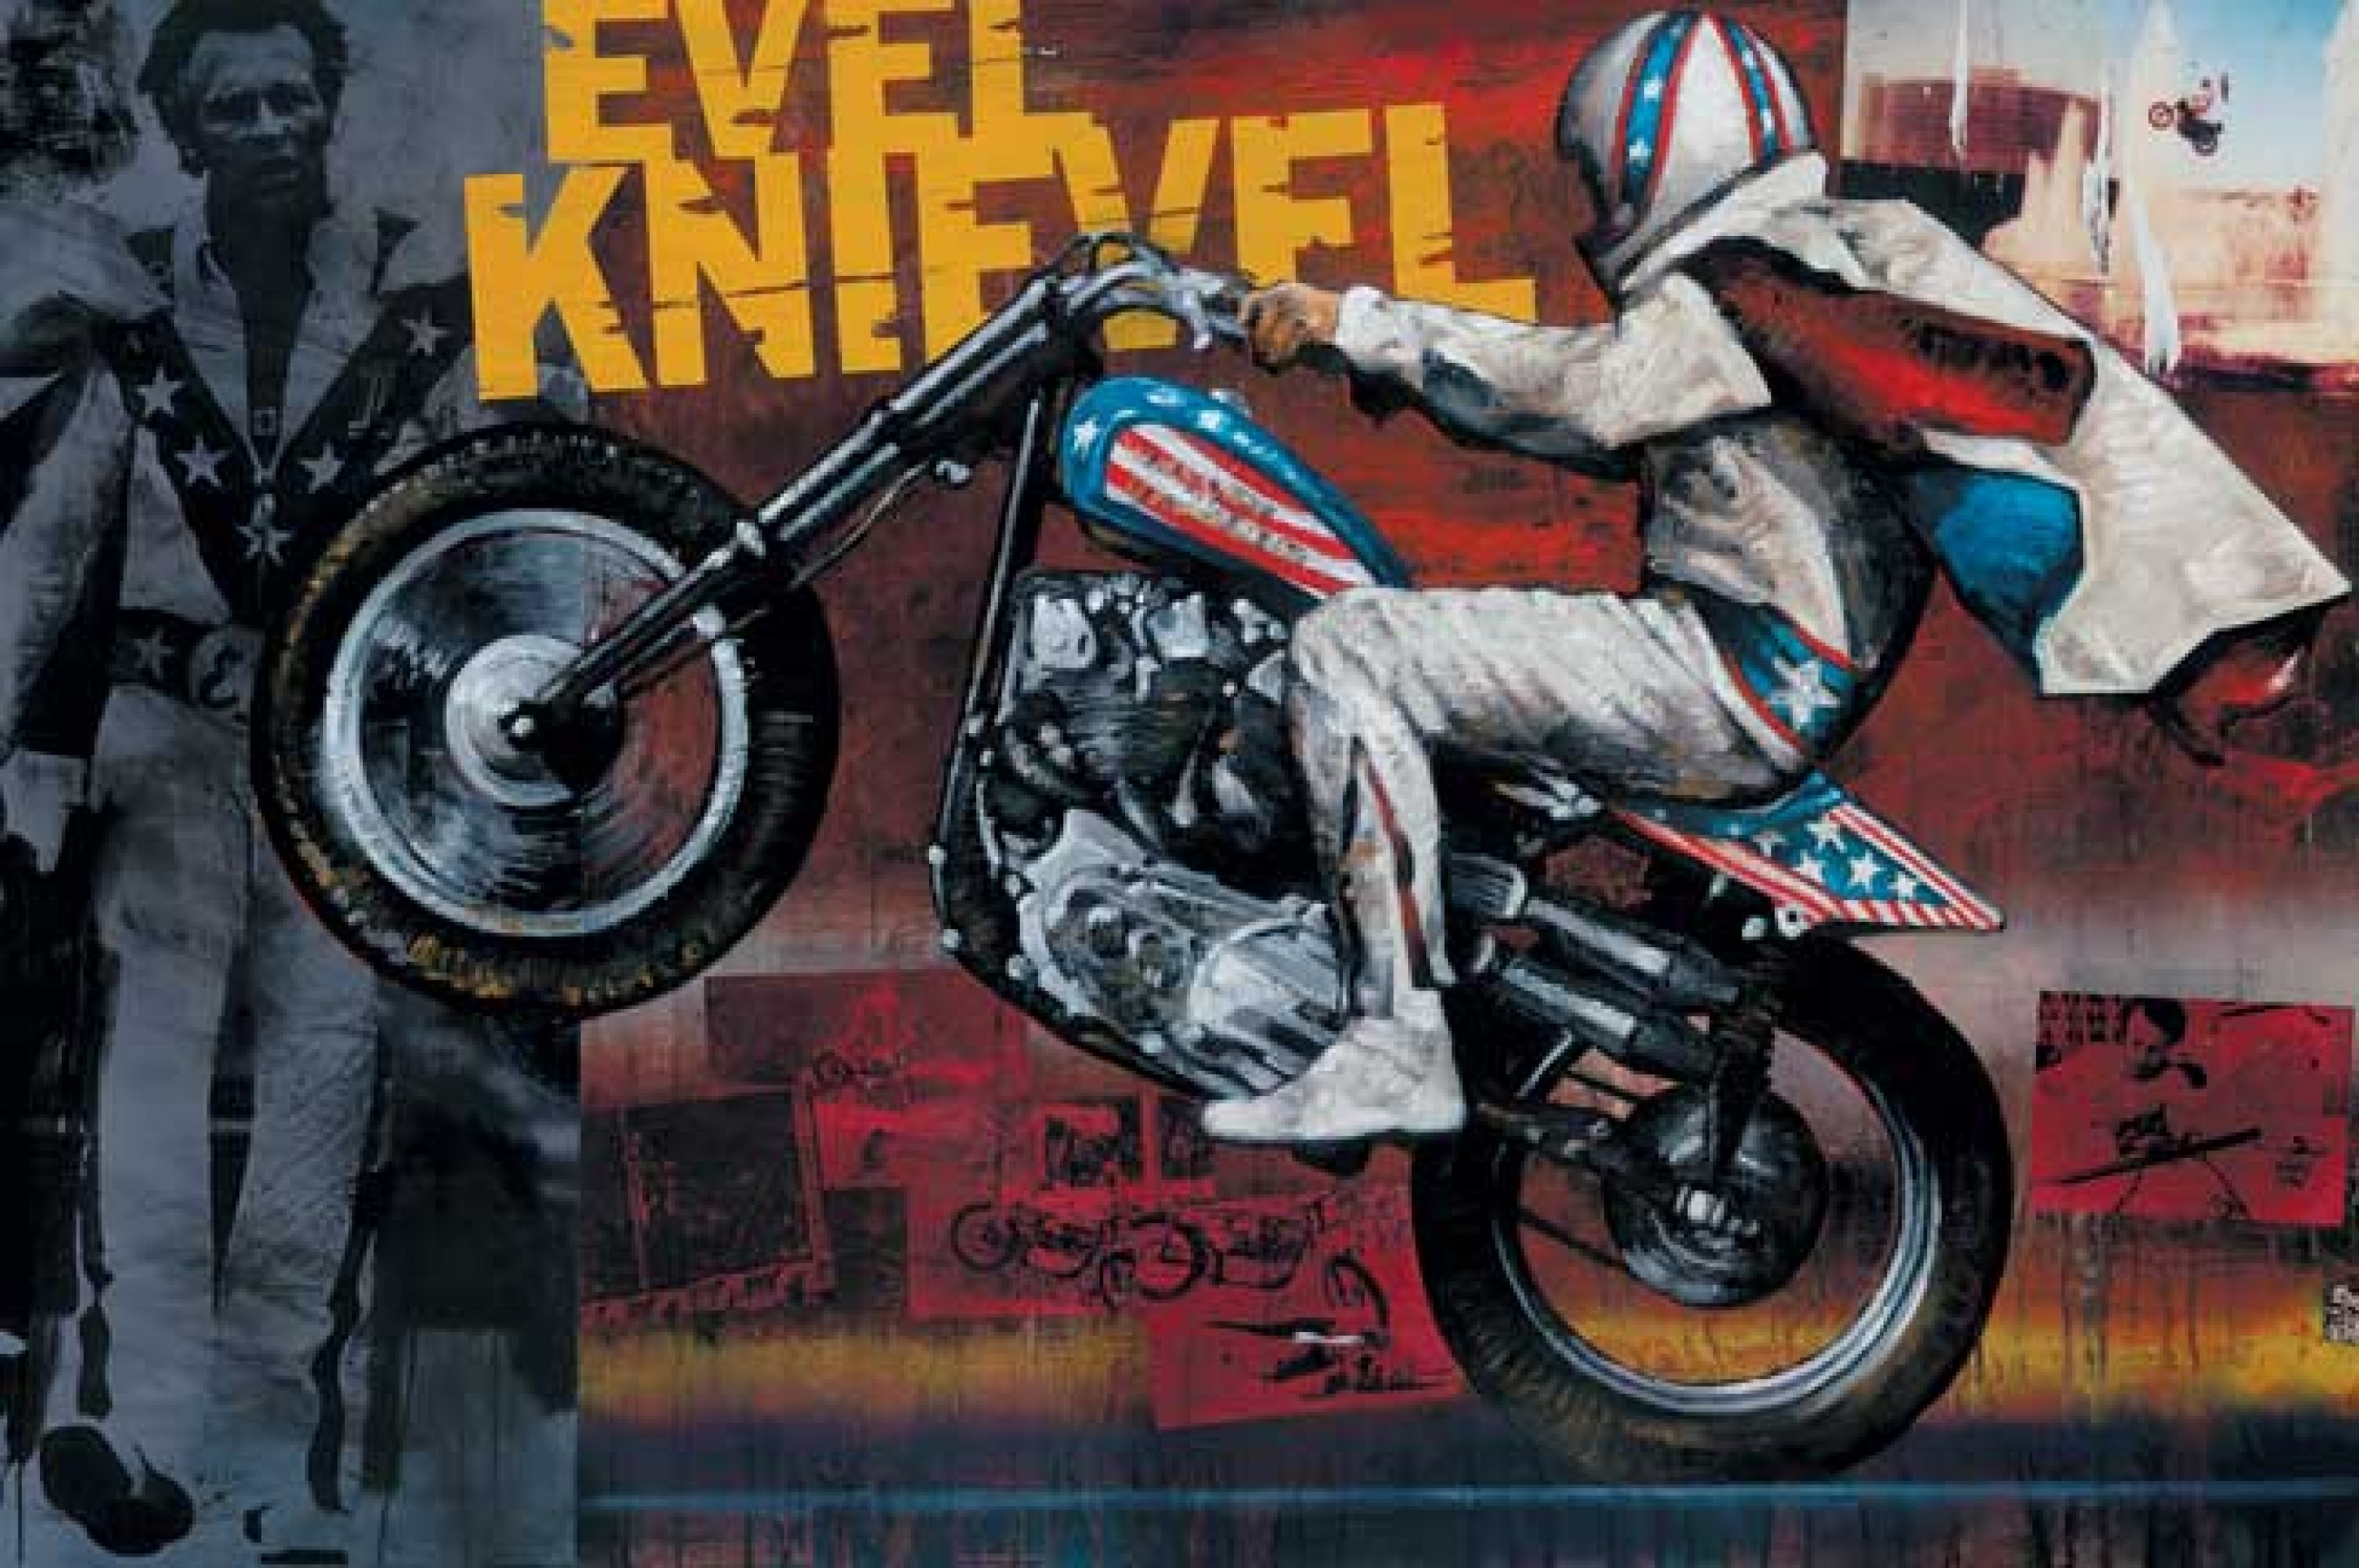 Evel Knievel Stratocycle Up For Auction: Stephen Holland Art For Sale